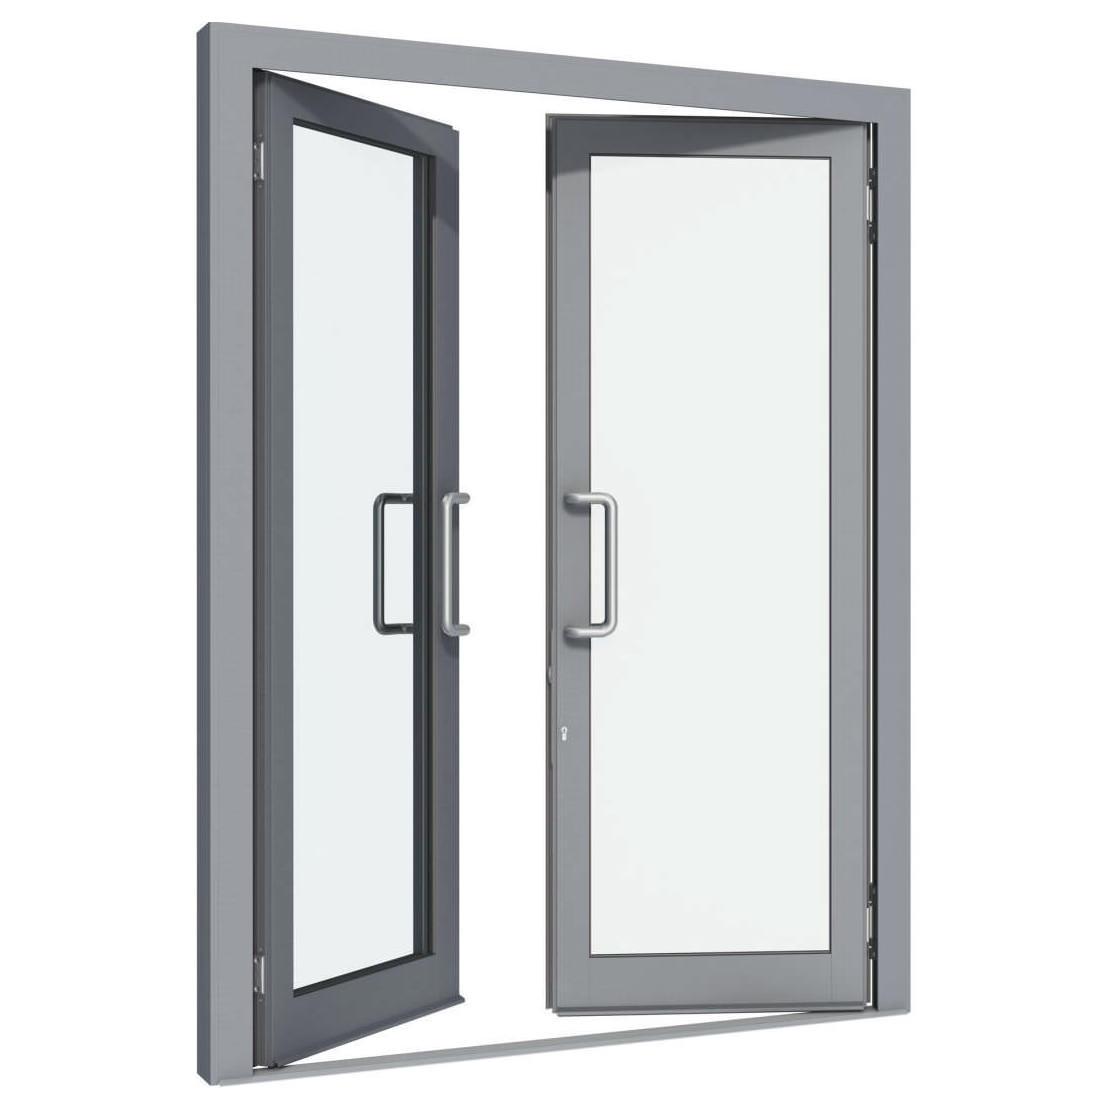 Sketch Windows Aluminium Doors Hayes Price Rite Aluminium Door Prices